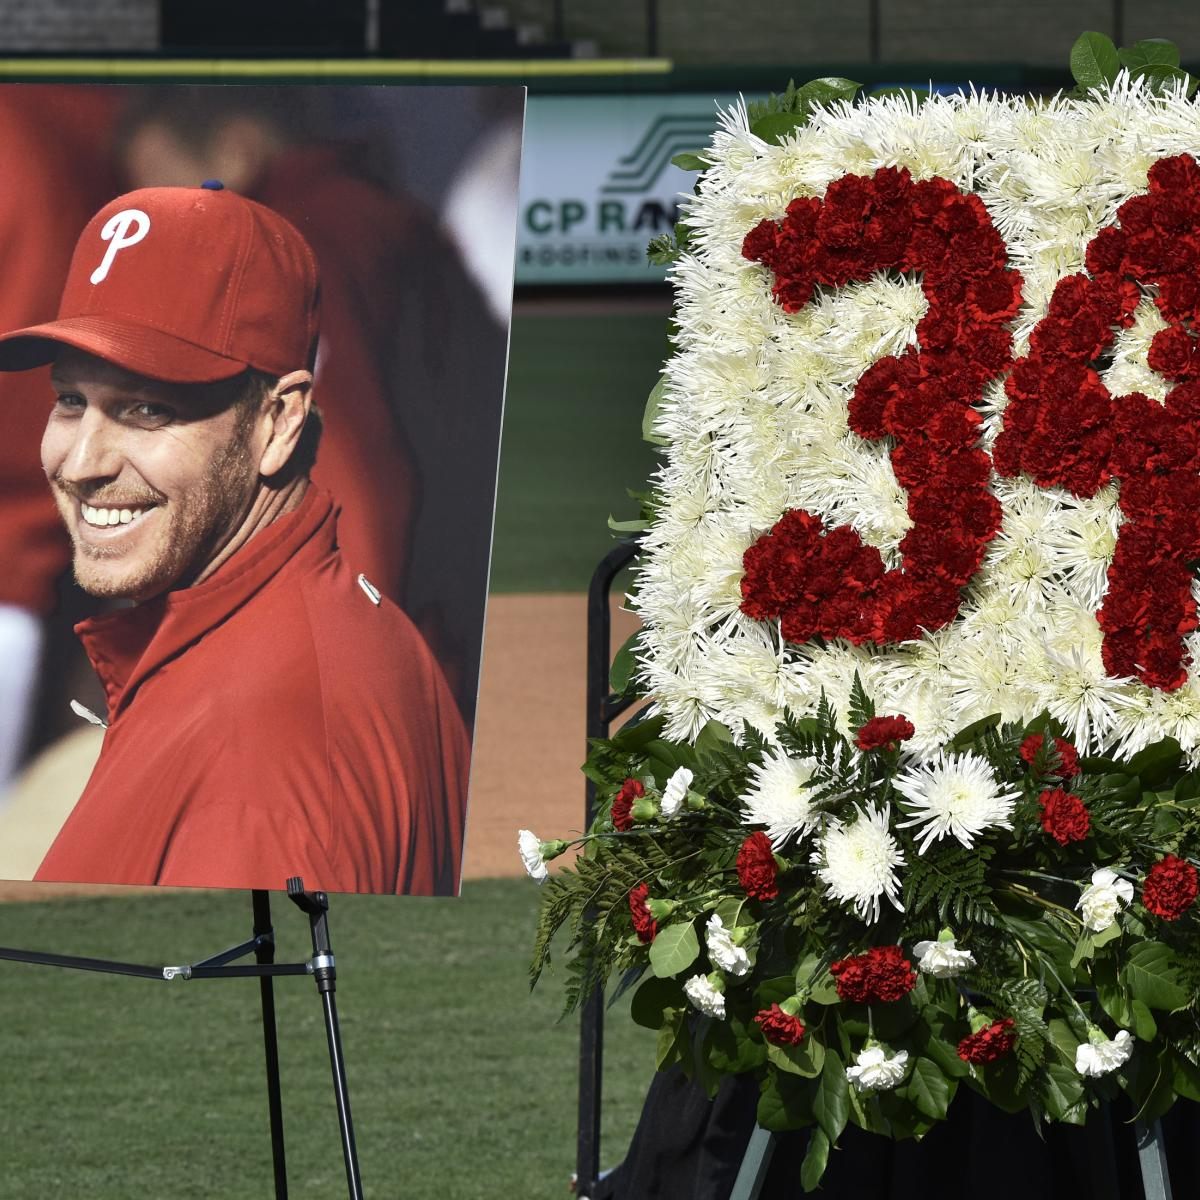 Report: Roy Halladay Autopsy Shows Traces of Morphine in System at Time of Death